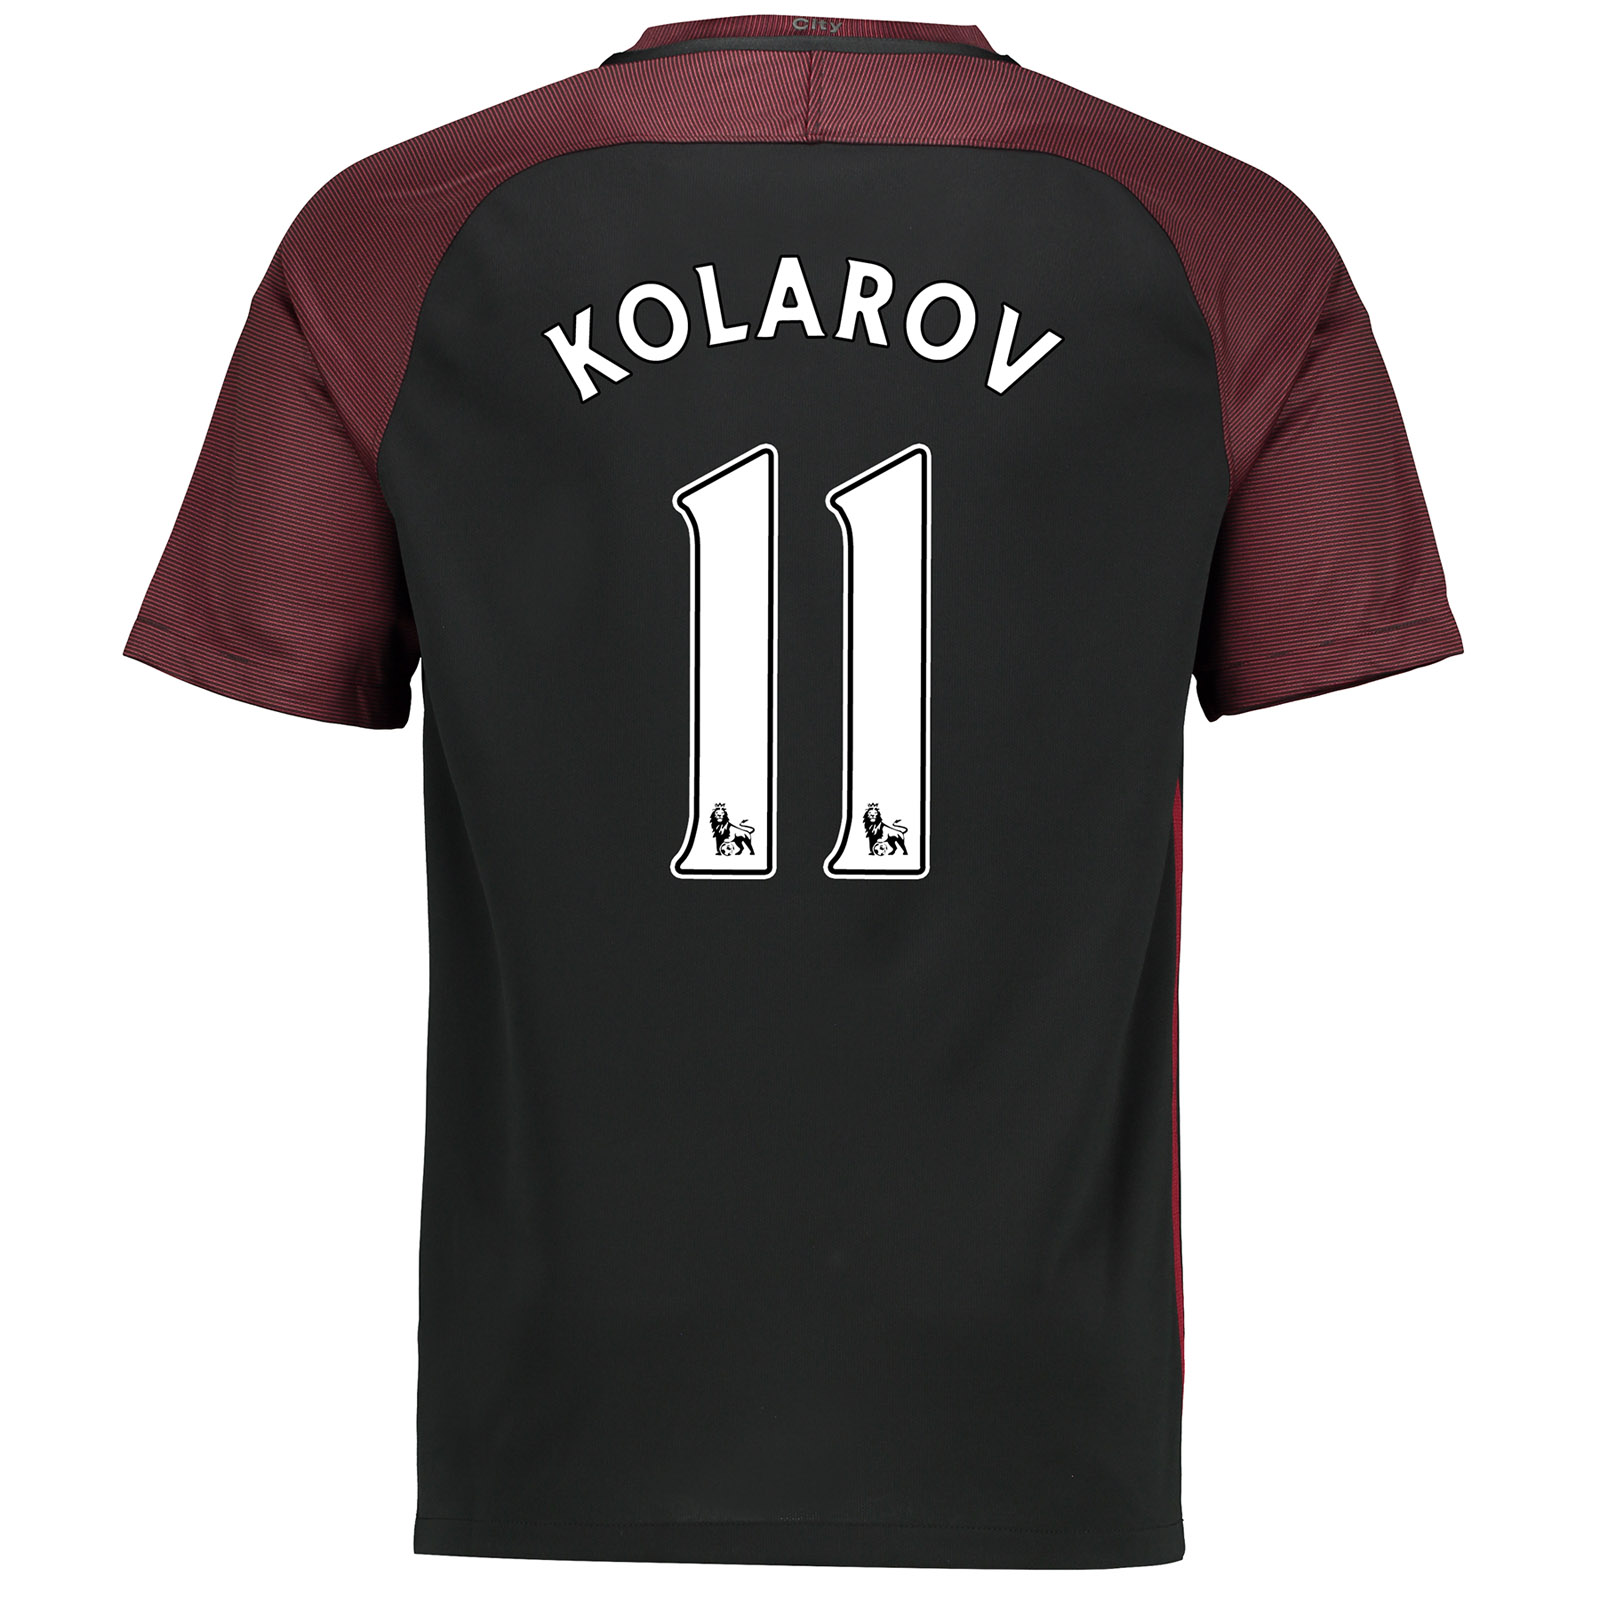 Manchester City Away Stadium Shirt 2016-17-Kids with Kolarov 11 printi